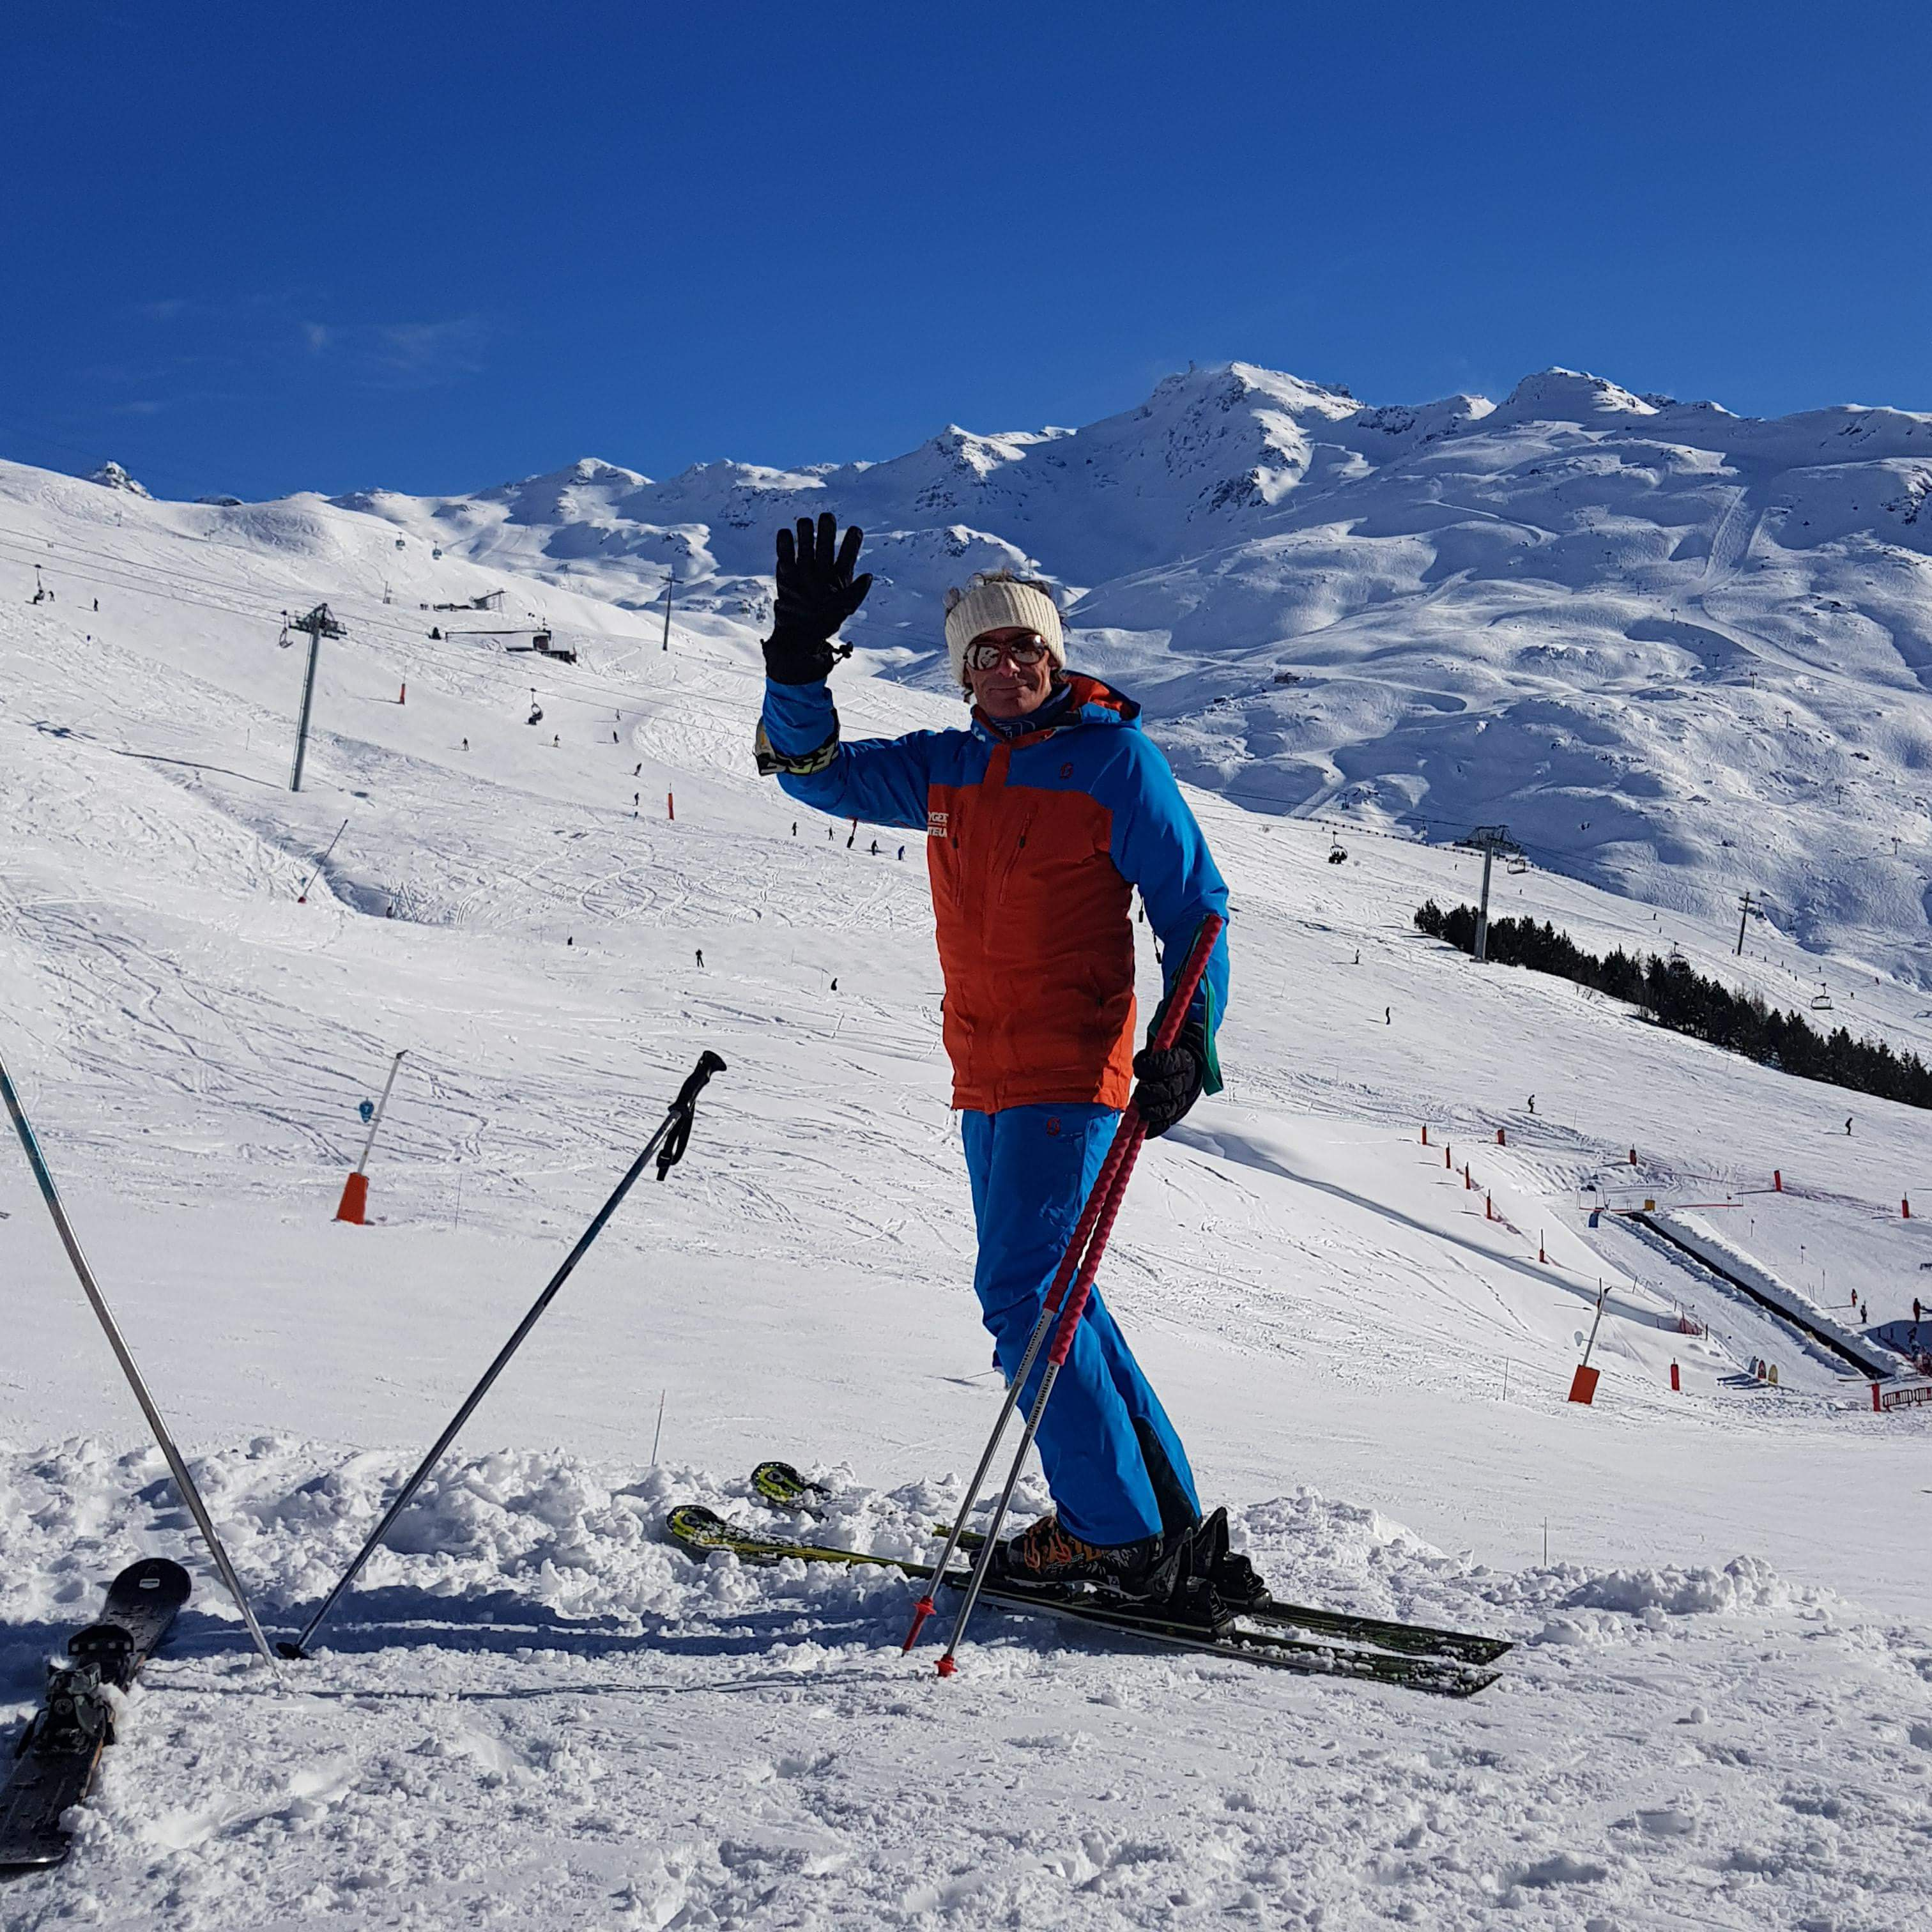 Christian Ski teacher with Oxygene Ski School